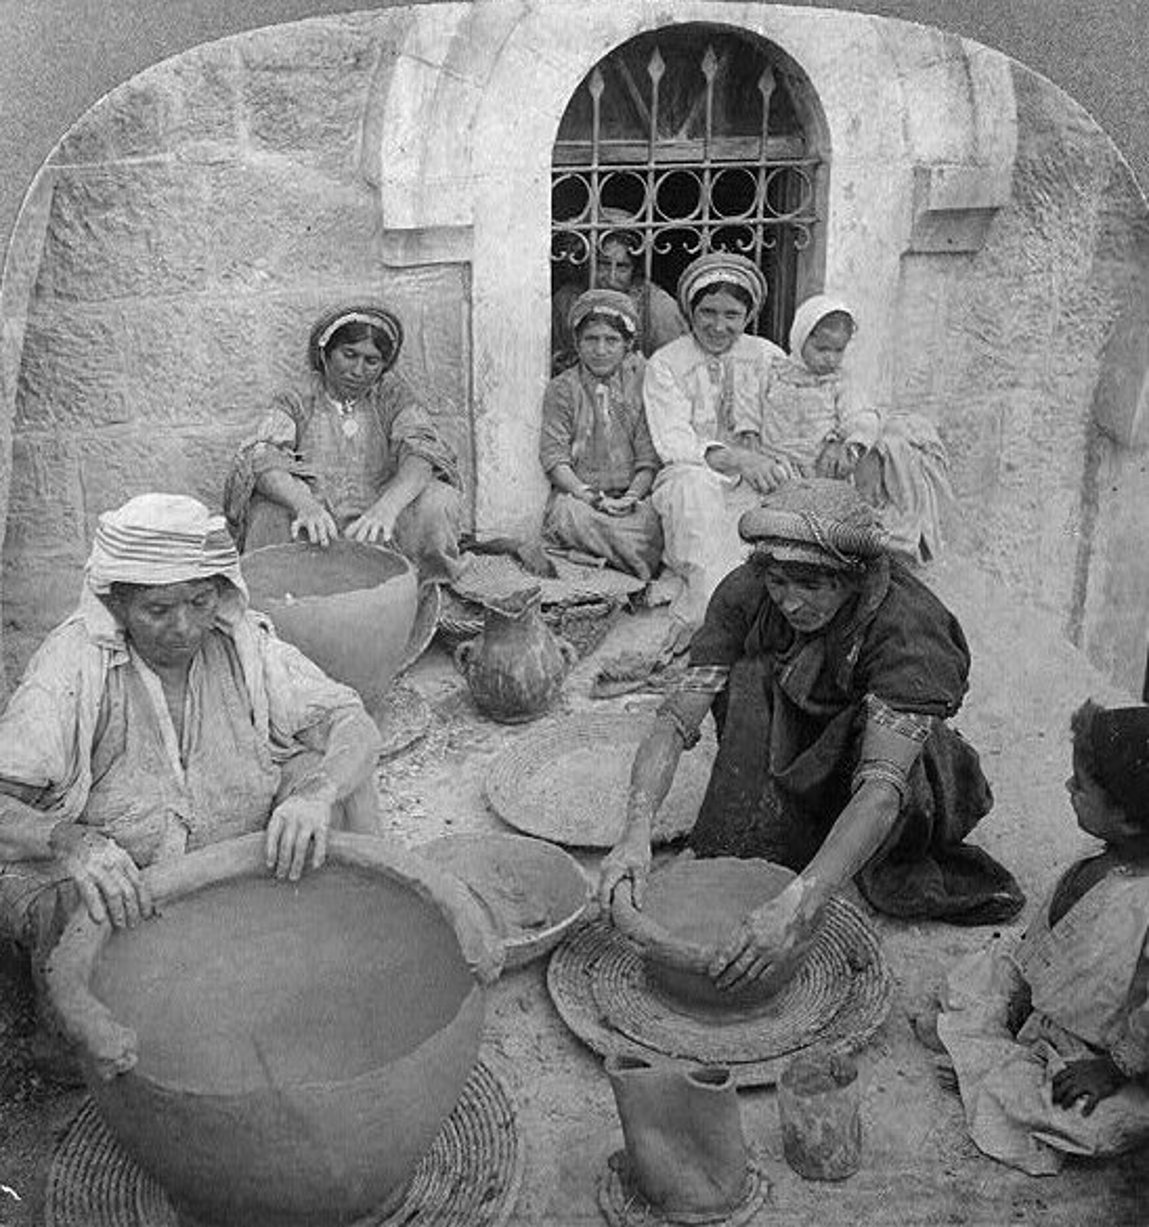 Ramallah - رام الله : Women making clay jars, Ramallah, Palestine - 1905